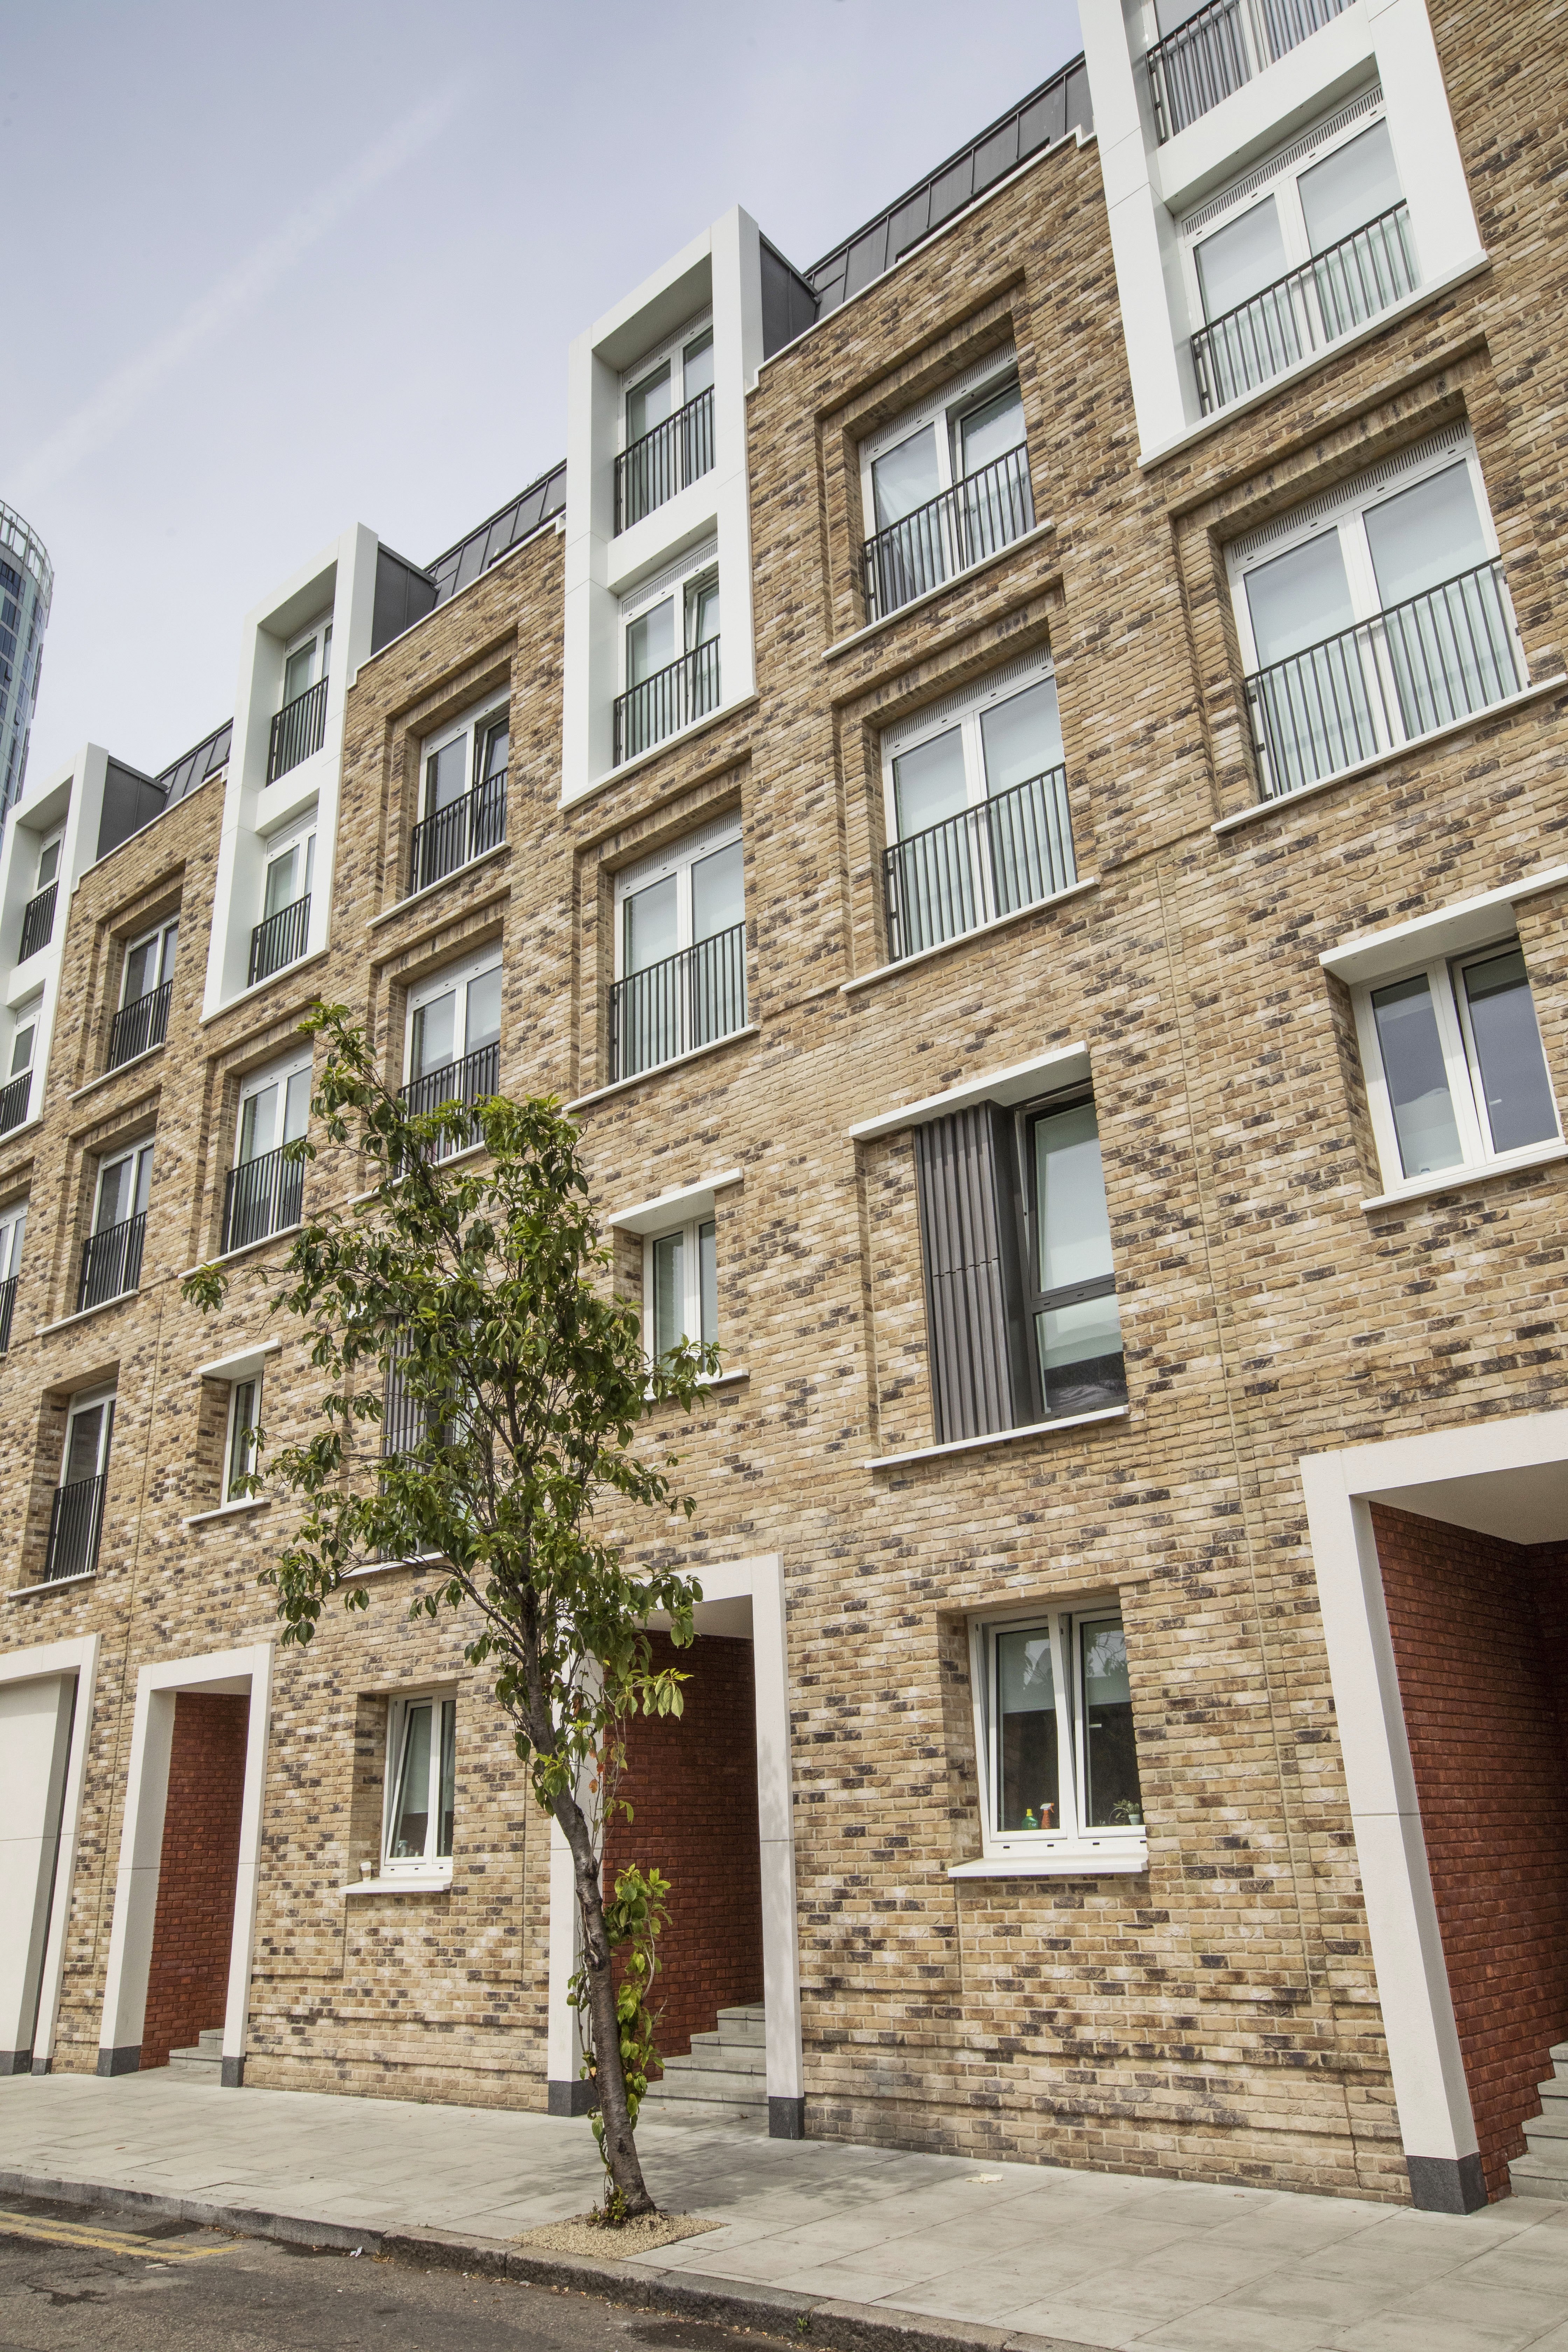 Affordable homes at our Keybridge scheme